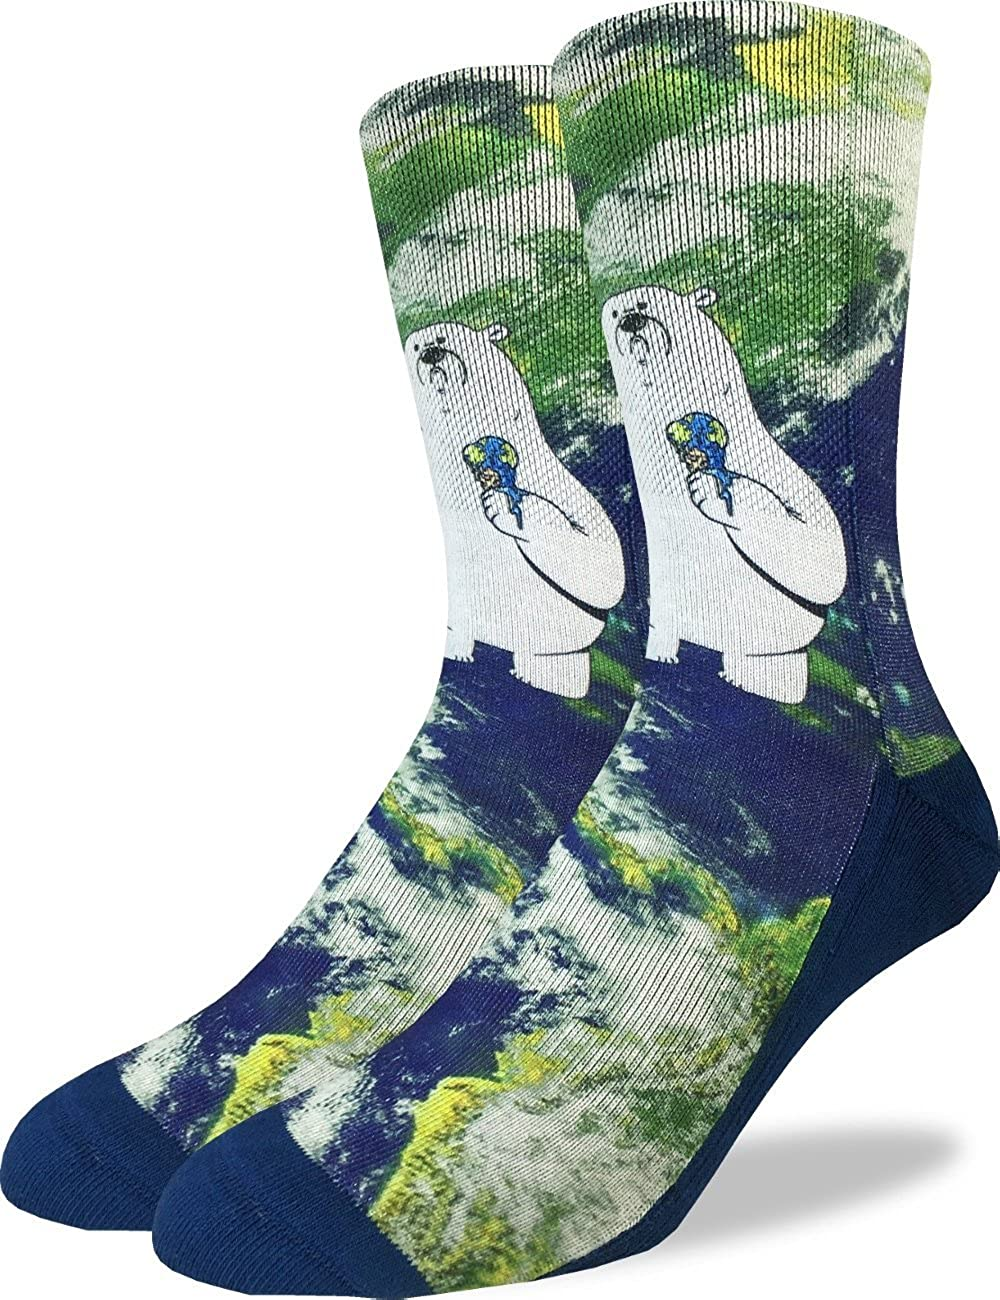 Good Luck Sock Men's Global Warming Polar Bear Crew Socks - Adult Shoe Size 8-13